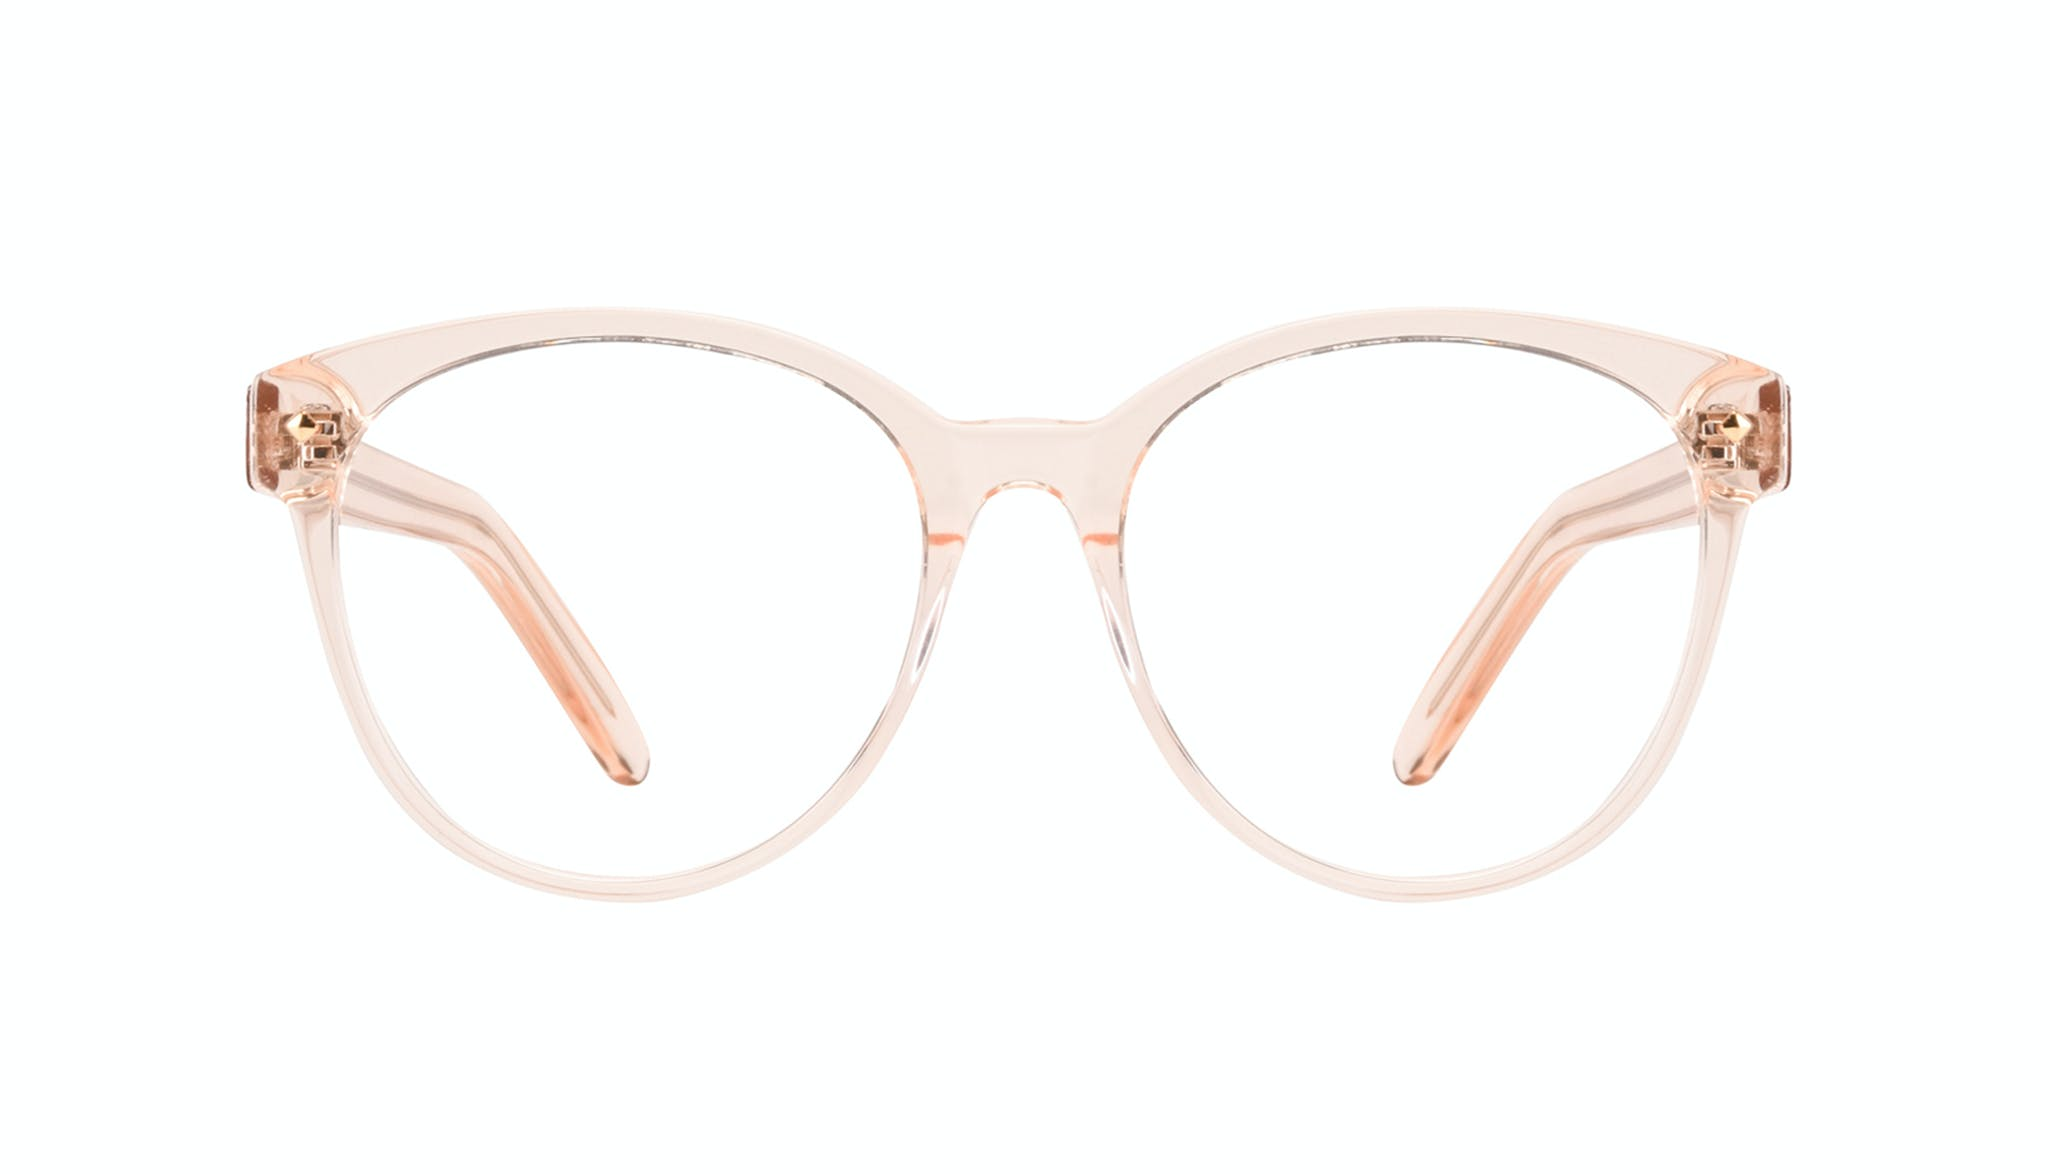 Affordable Fashion Glasses Round Eyeglasses Women Eclipse Blond